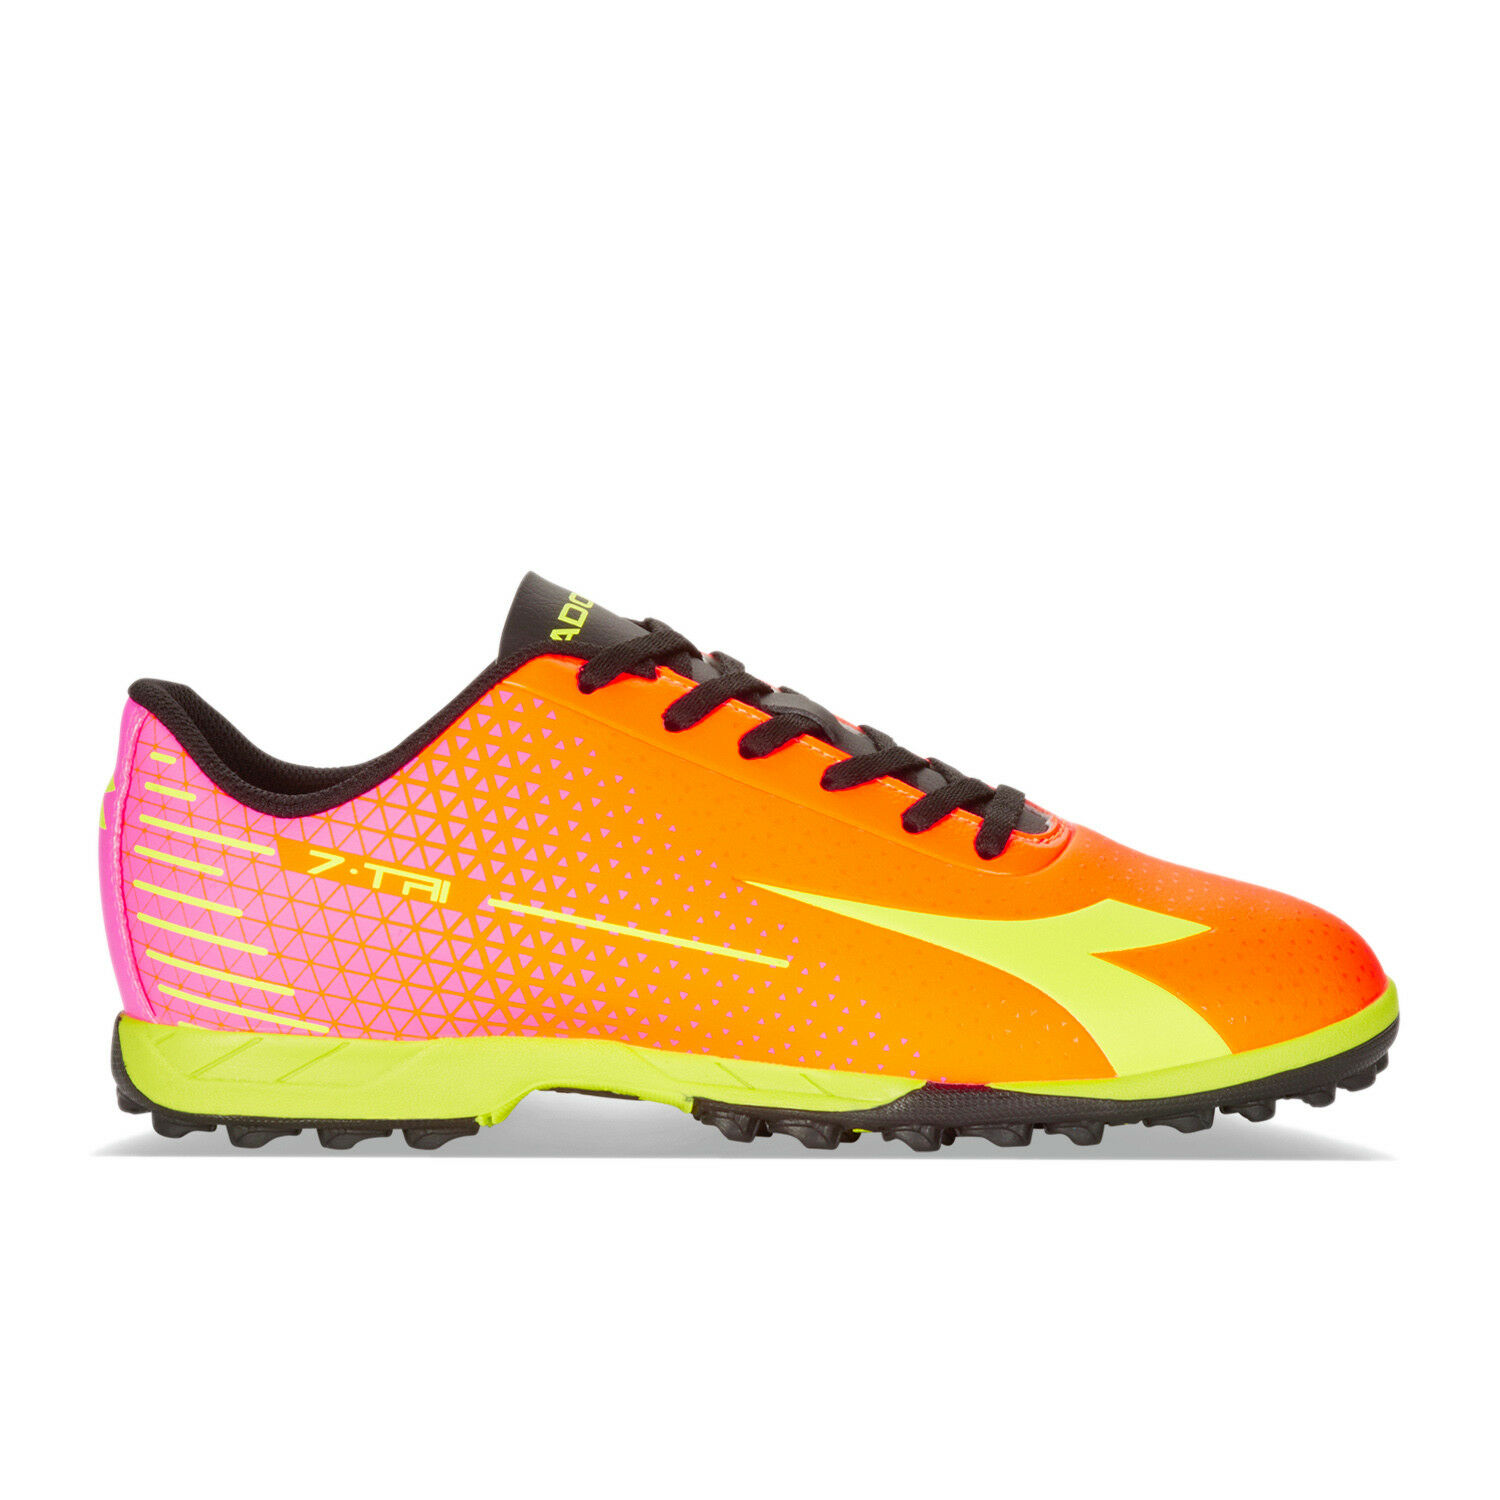 Diadora - Football Boot 7-TRI TF for man